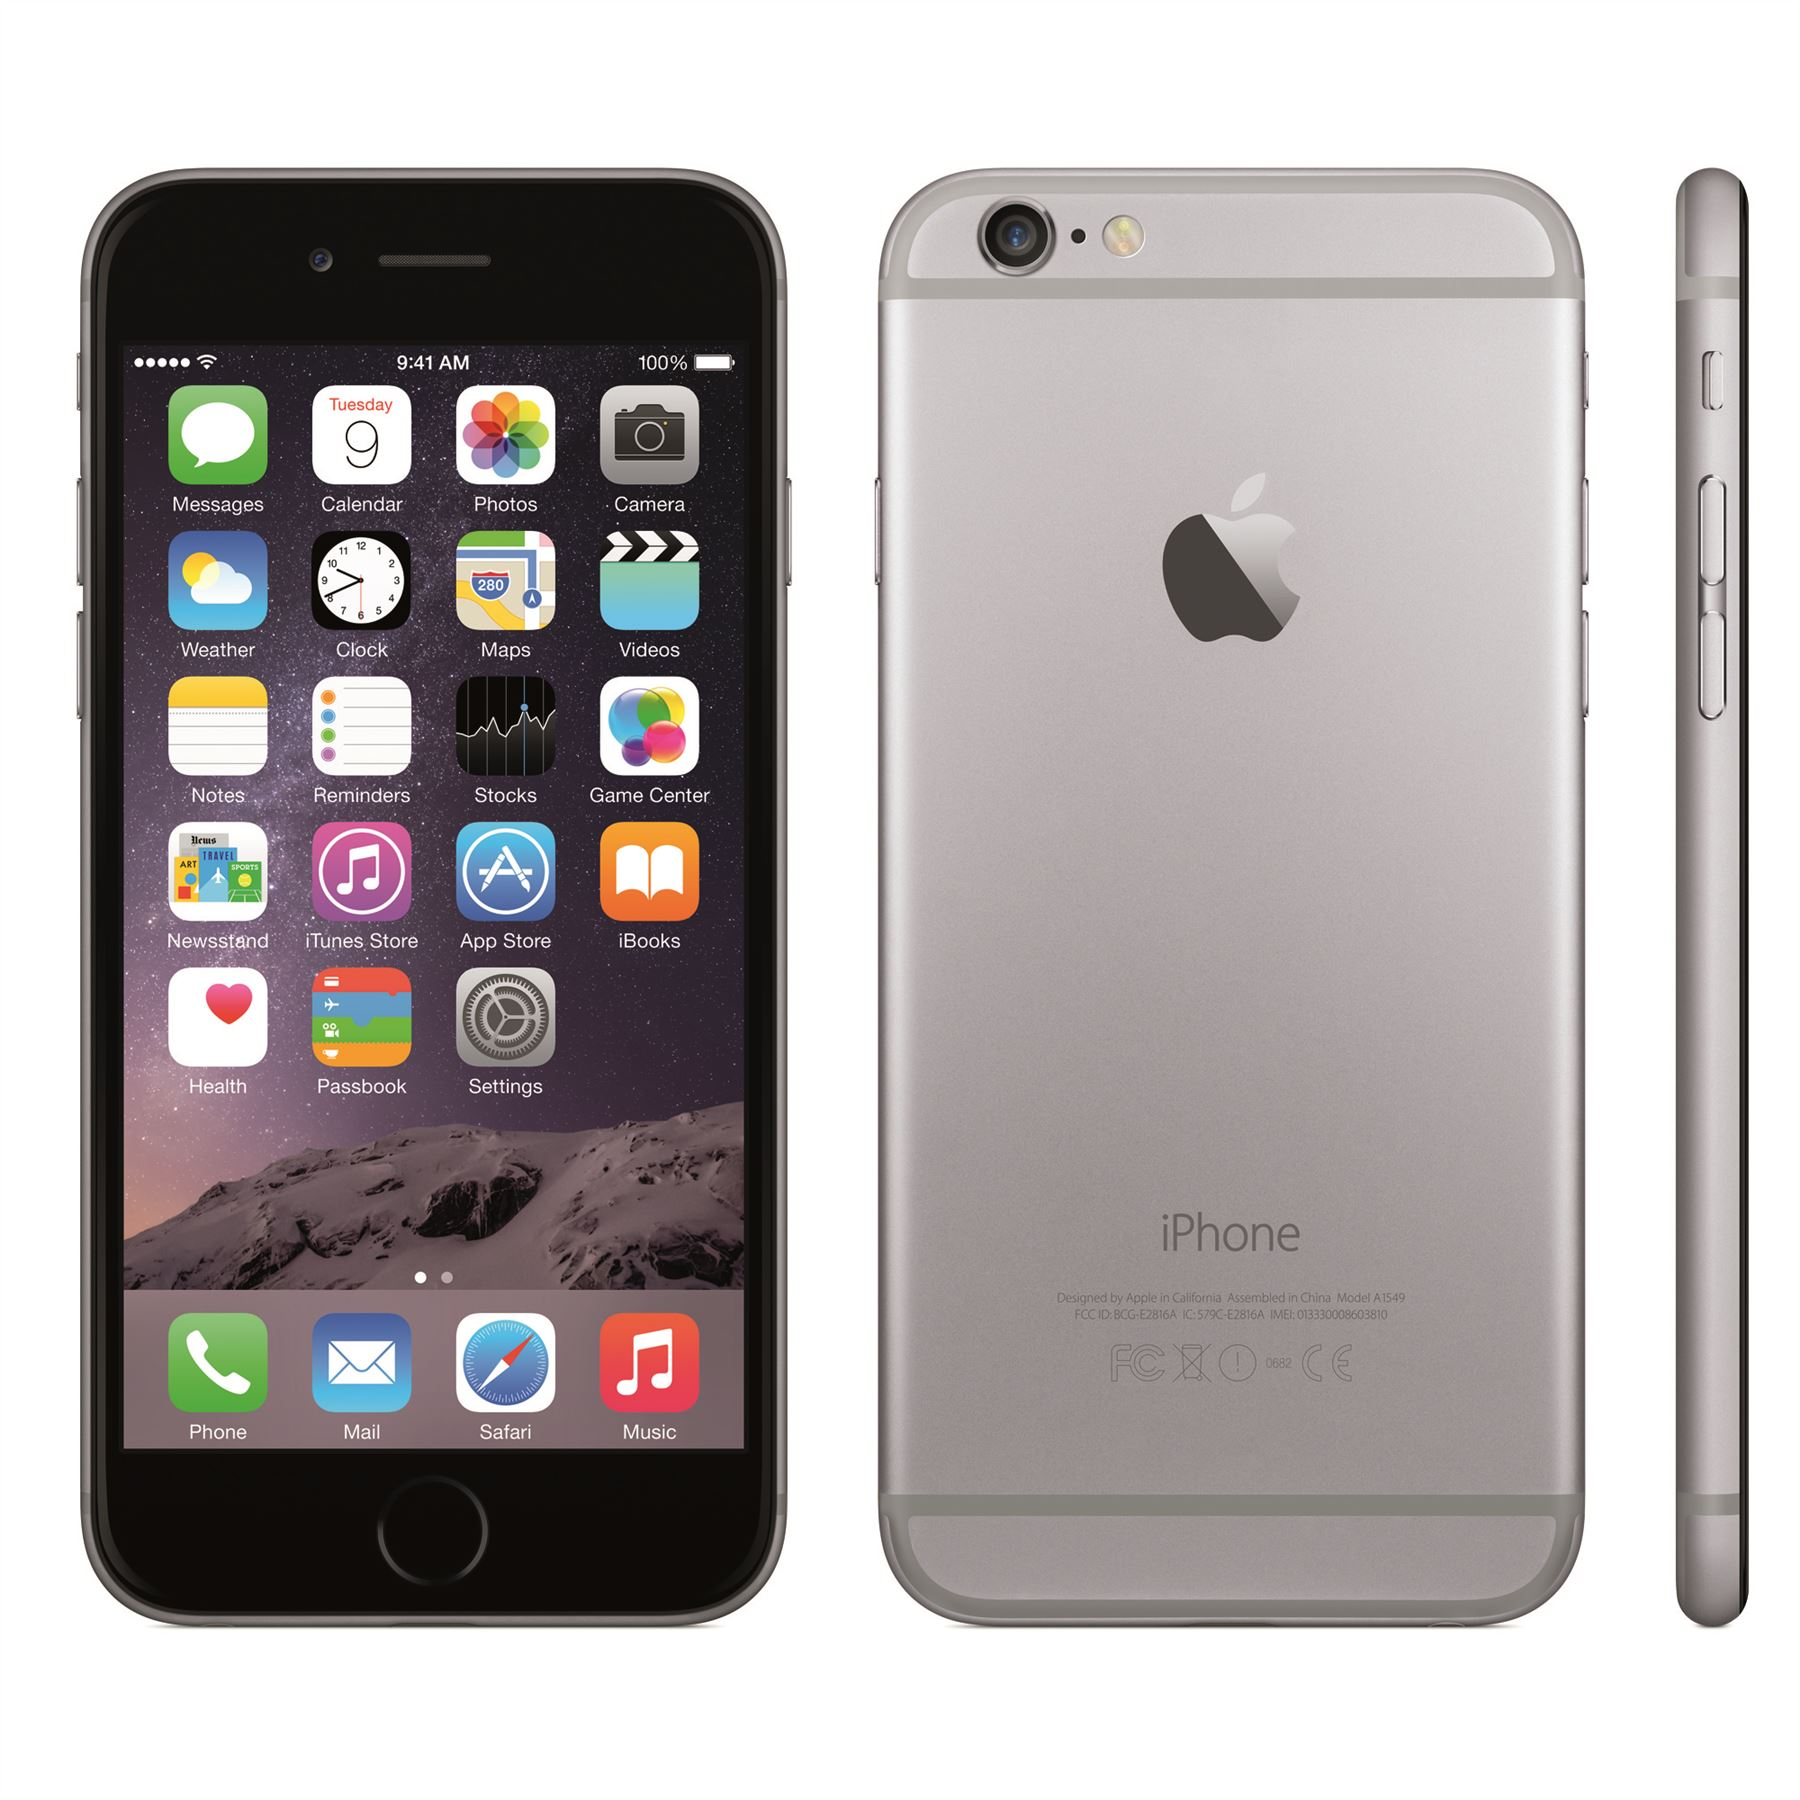 Celular Smartphone Apple iPhone 6 16GB Cinza (1549) (Recon)